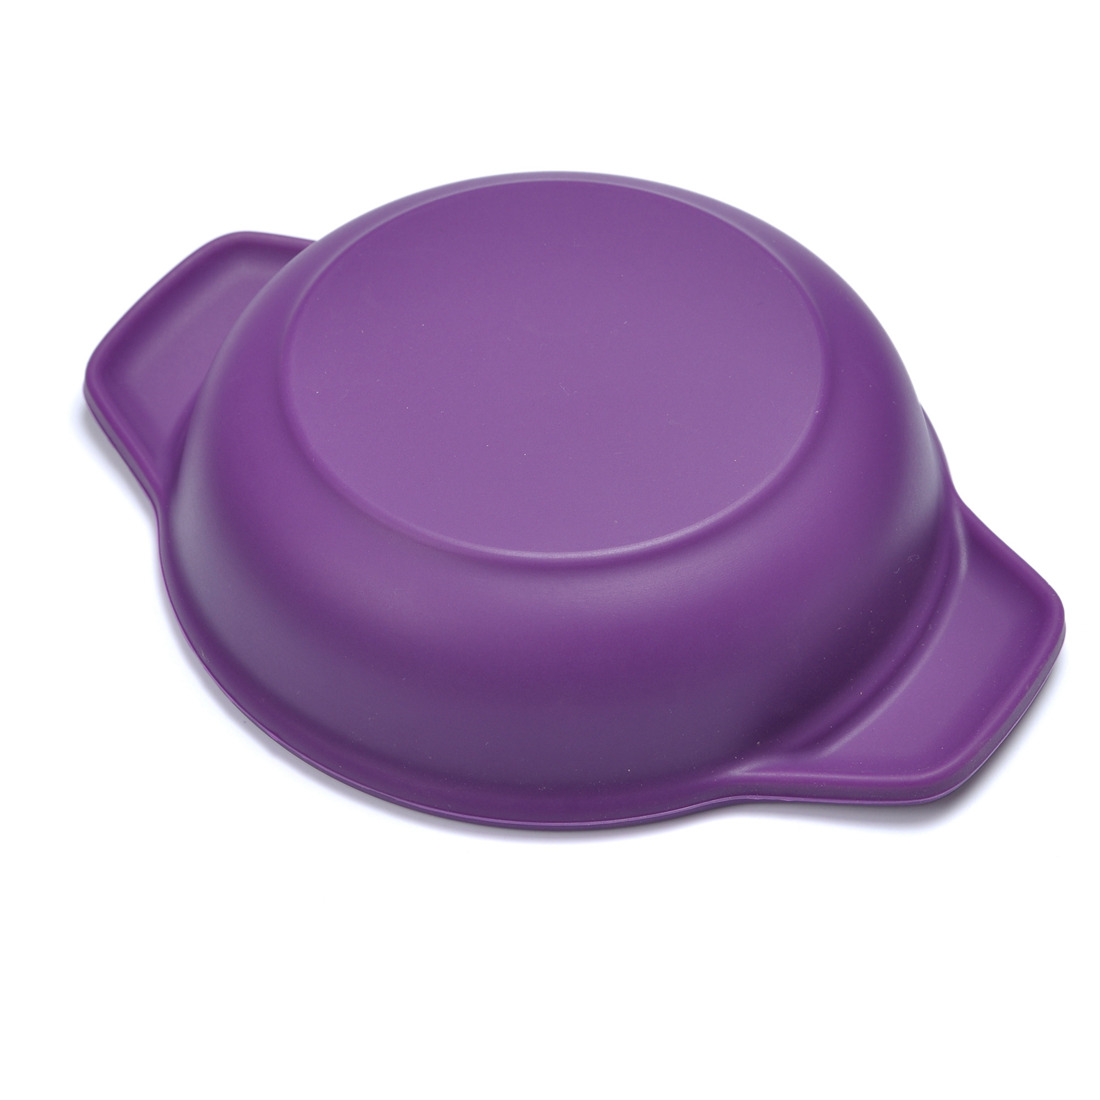 Invotive High-quality silicone bowl factory for global market-5